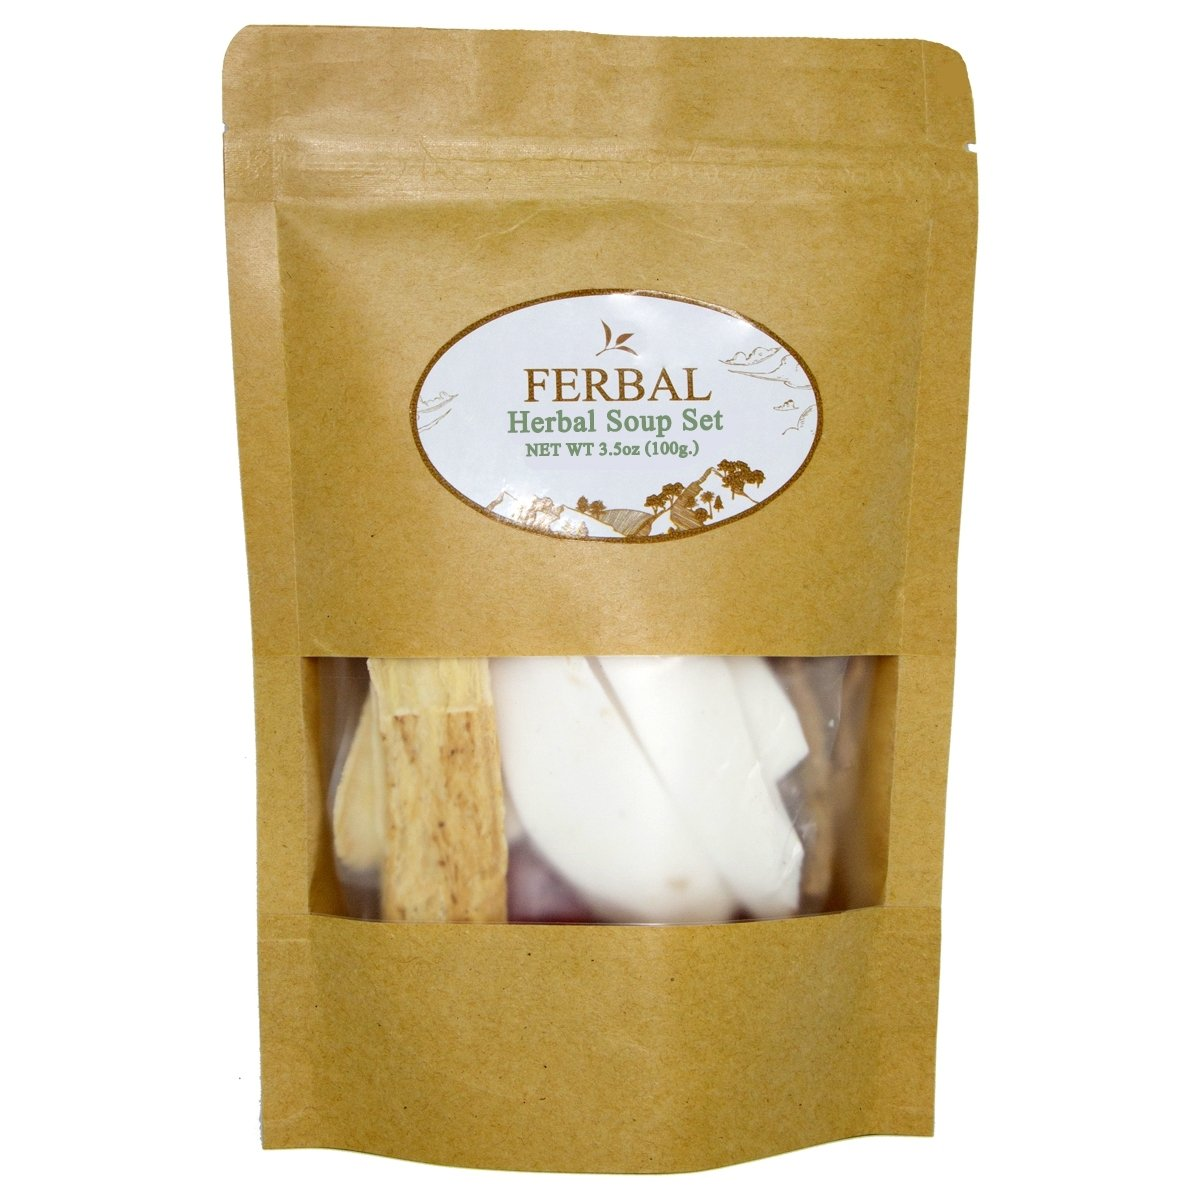 Ferbal Chinese Herbs Soup Dried Herbal SetMix Superfood Easy Cooking 100g